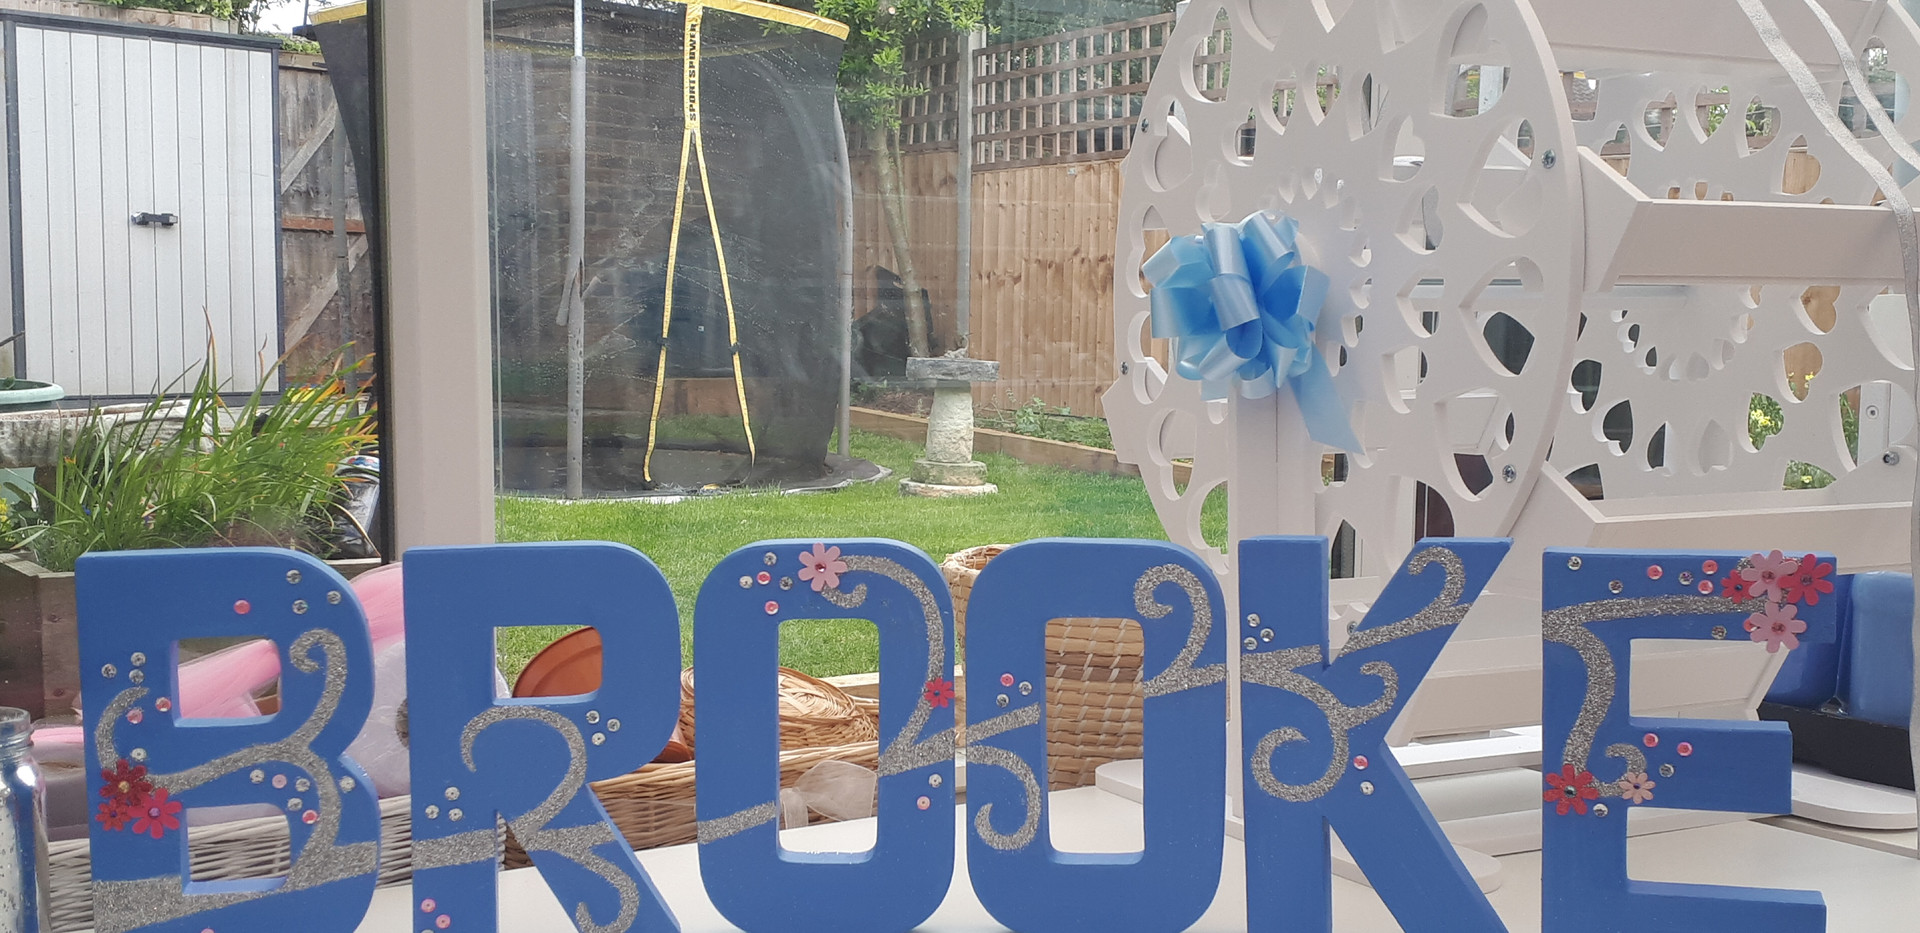 Decorated Freestanding letters